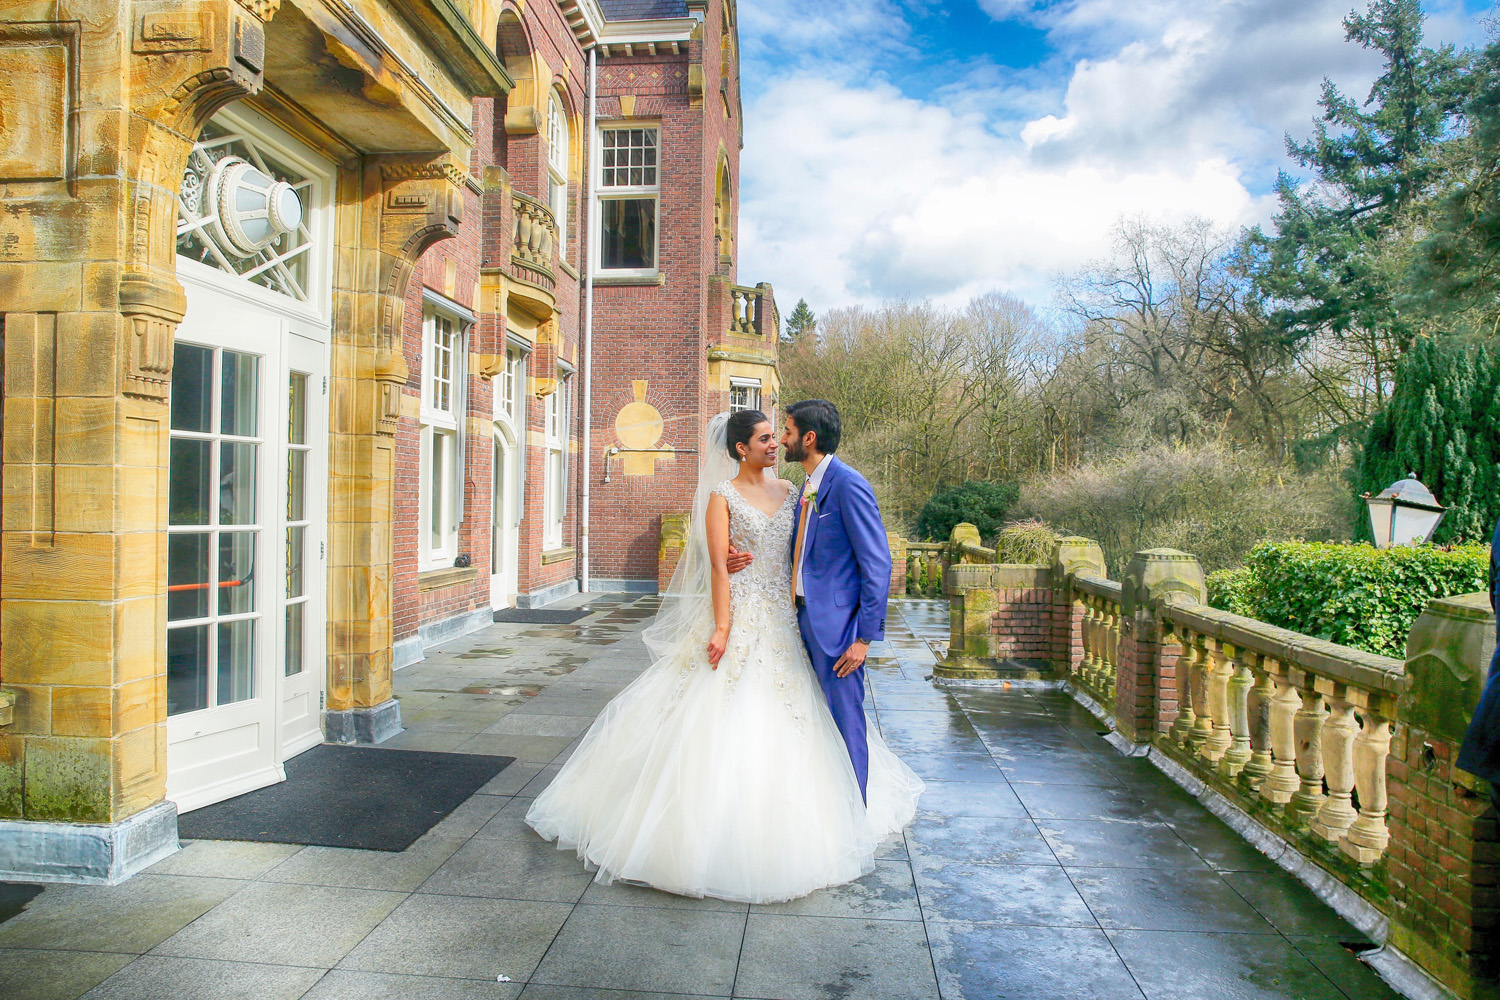 Ankita & Manmeet Fairytale Indian Wedding in Amsterdam - The Maharani Diaries